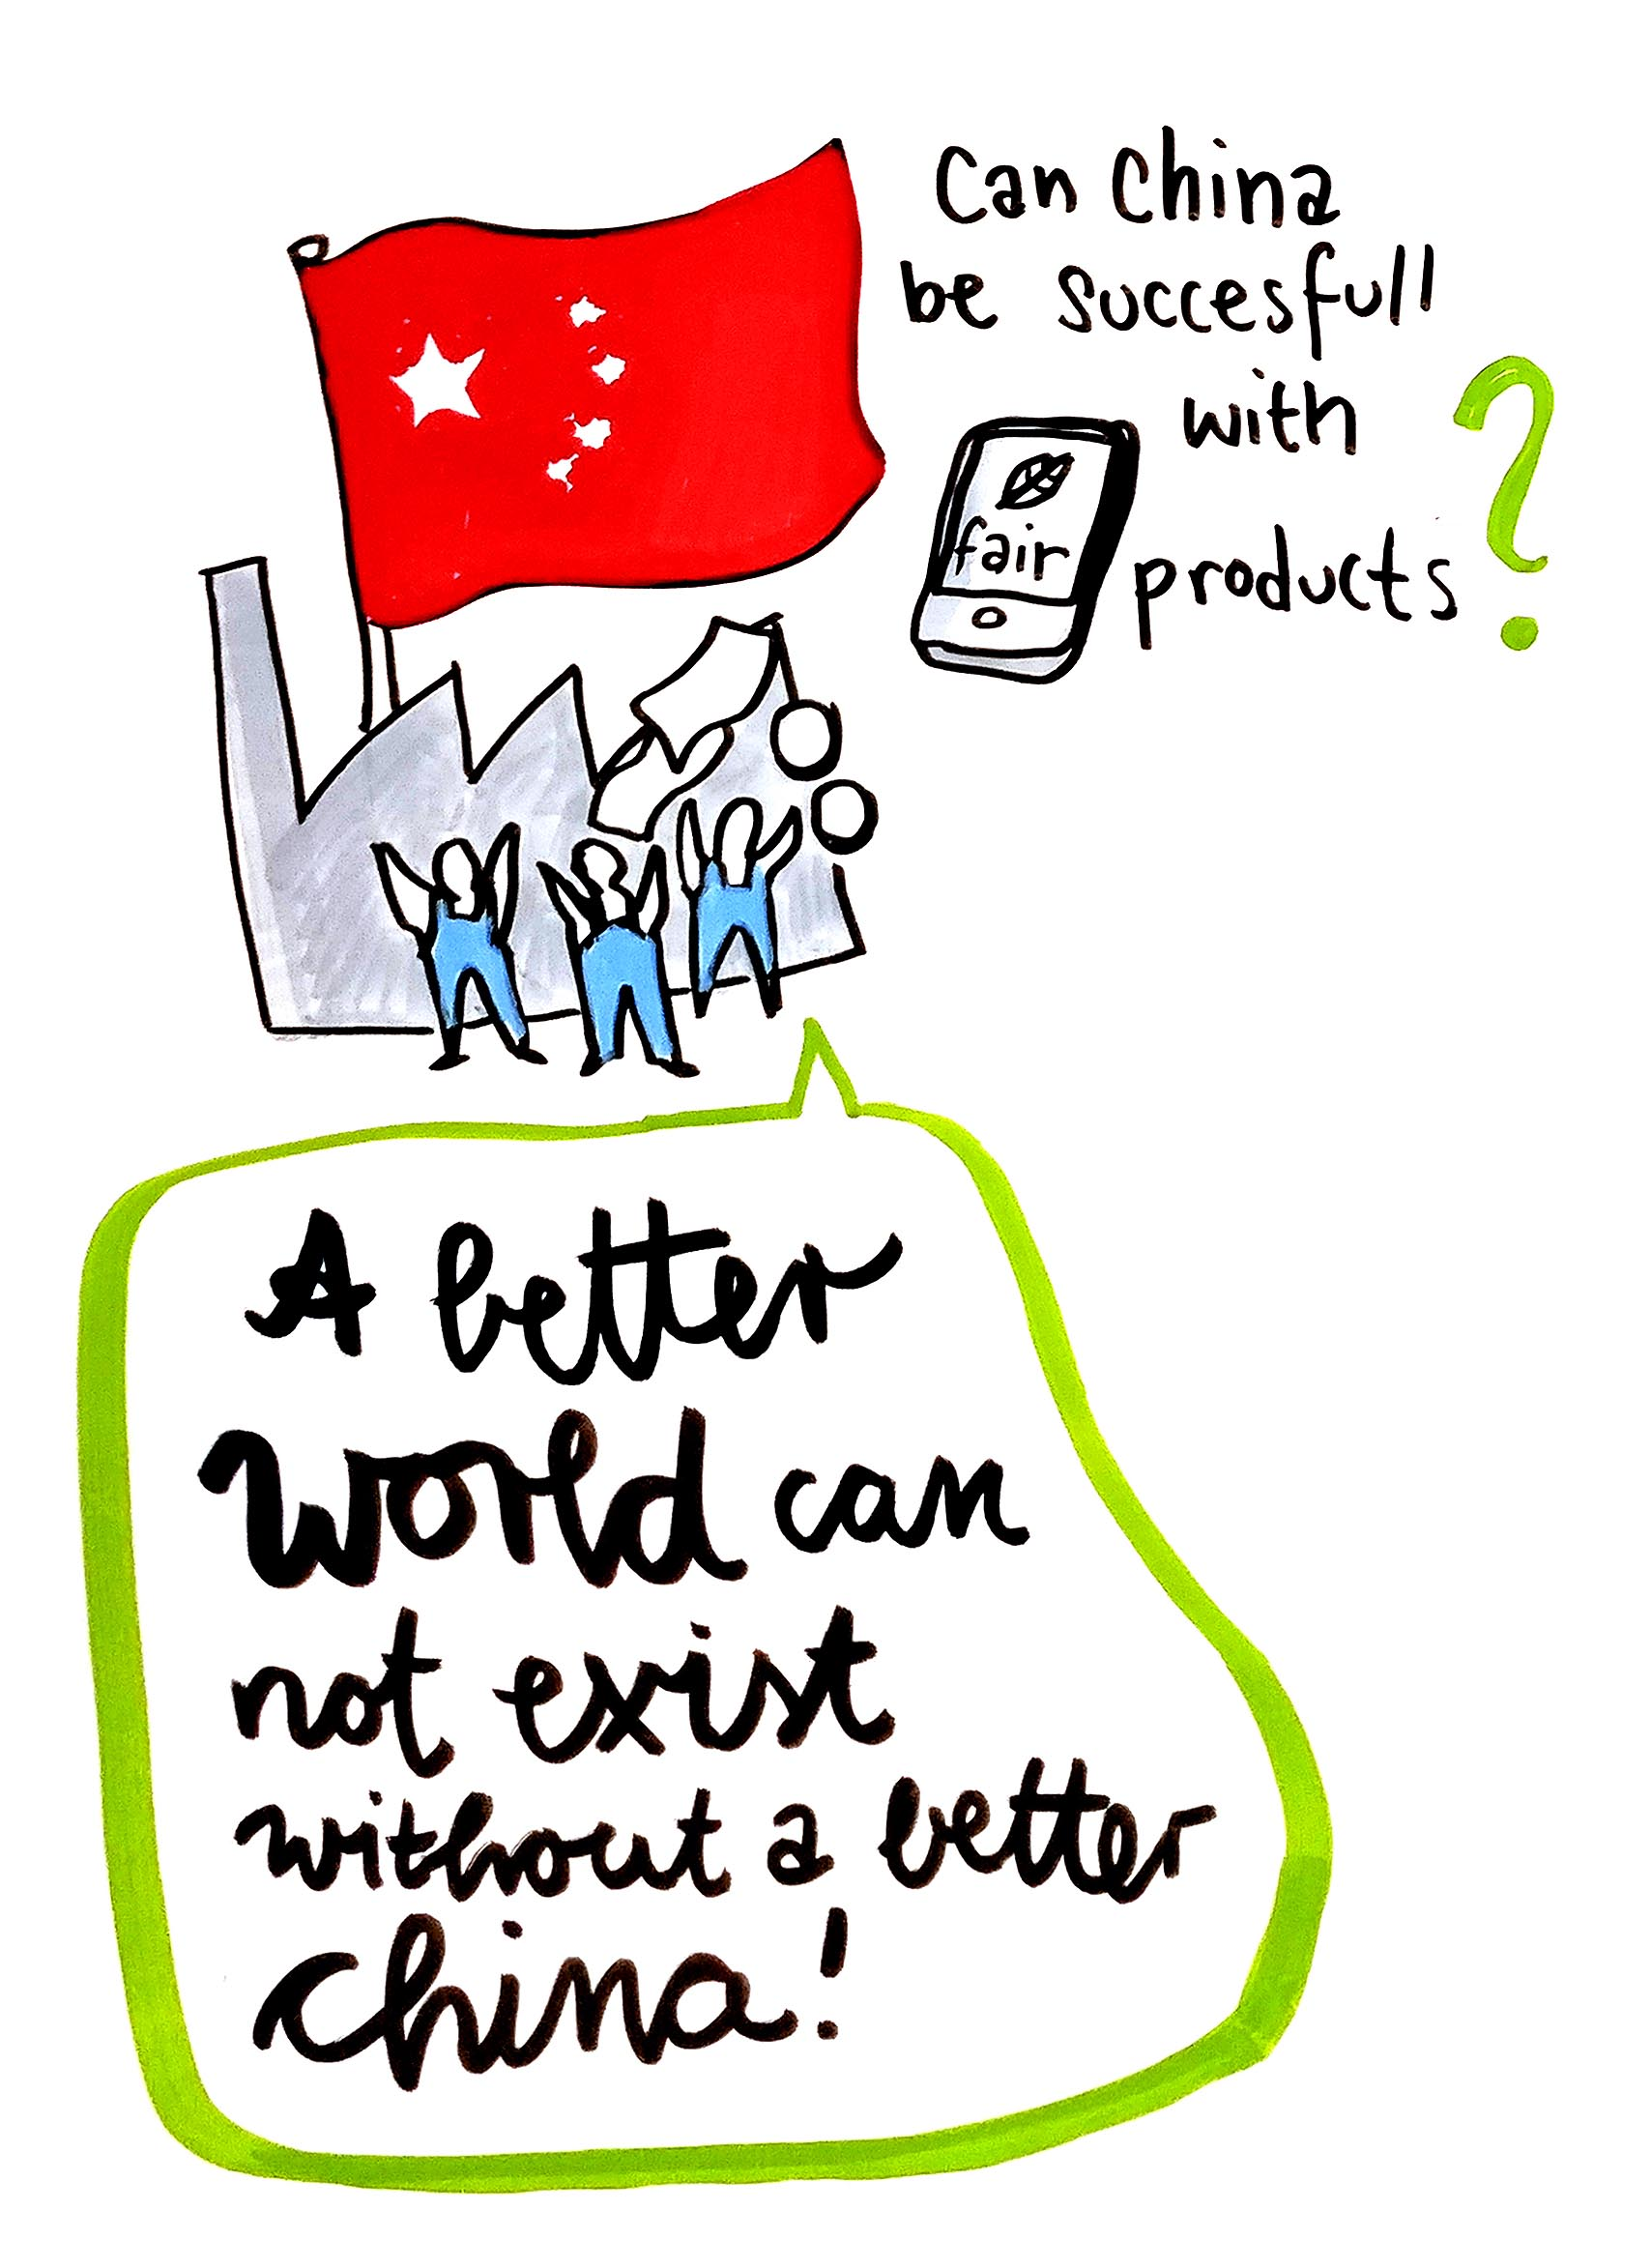 chinas_it-factories_better-world.jpg